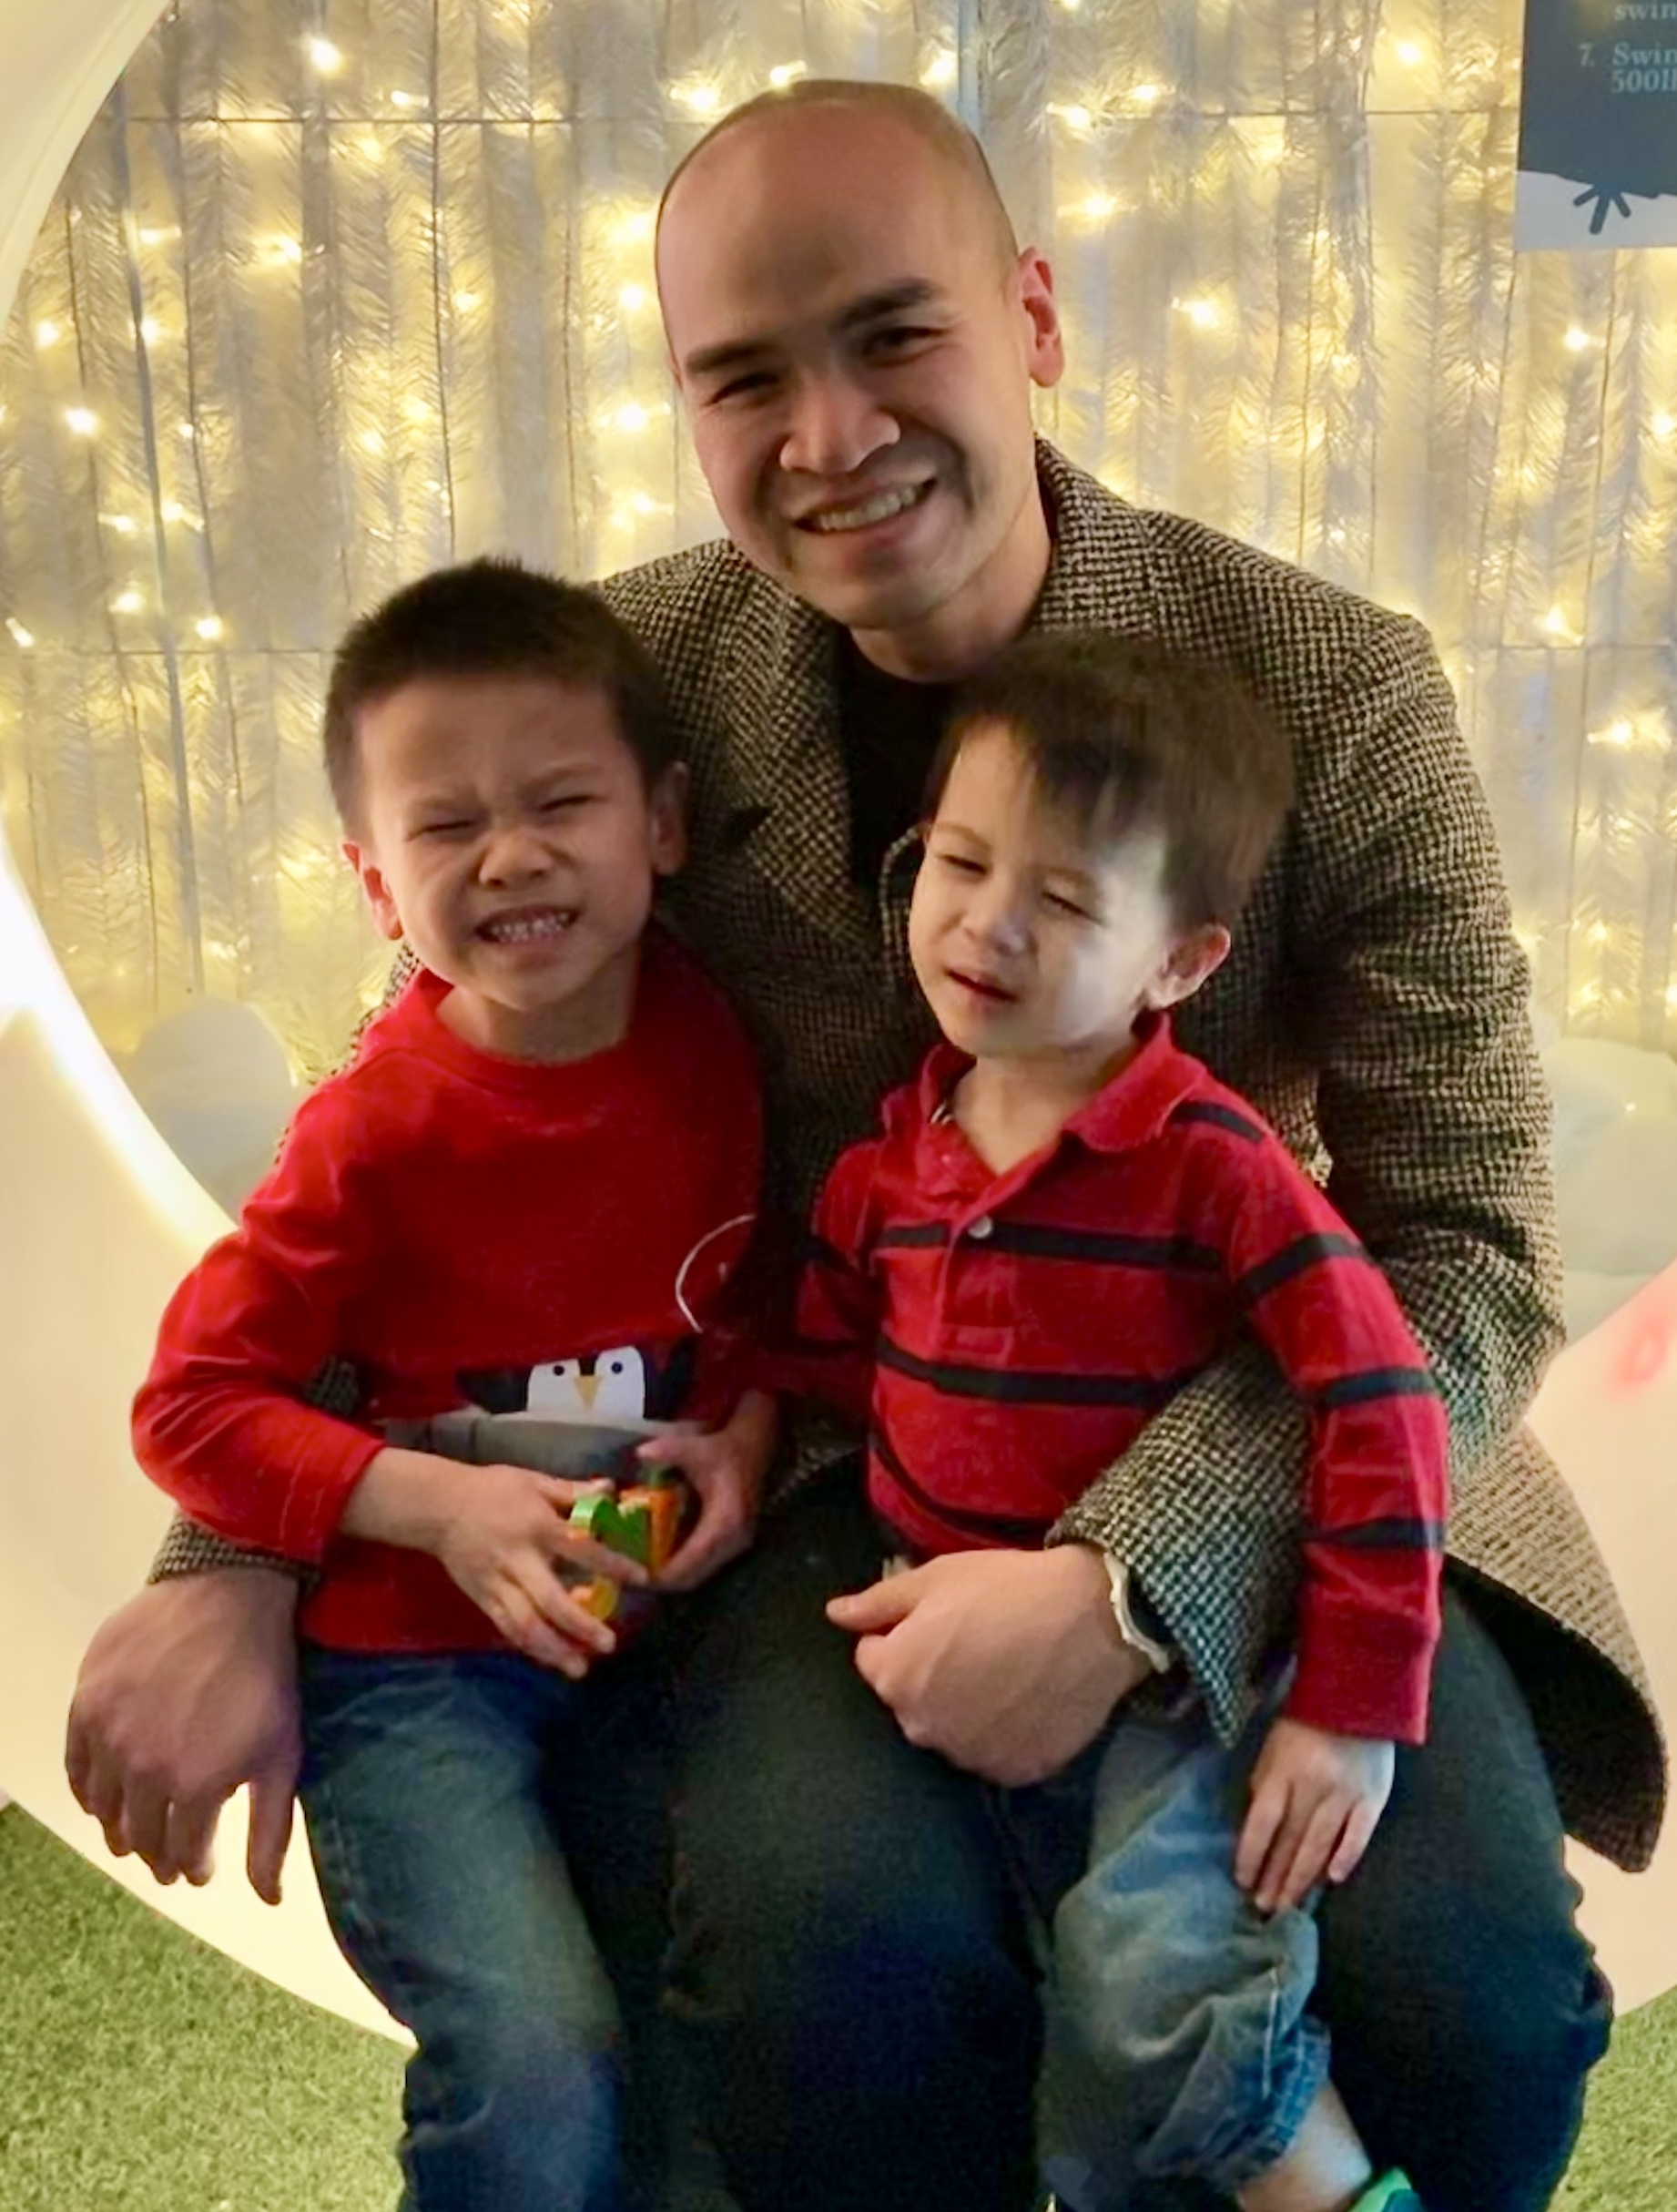 Andrew happy with kids - weight loss transformation story